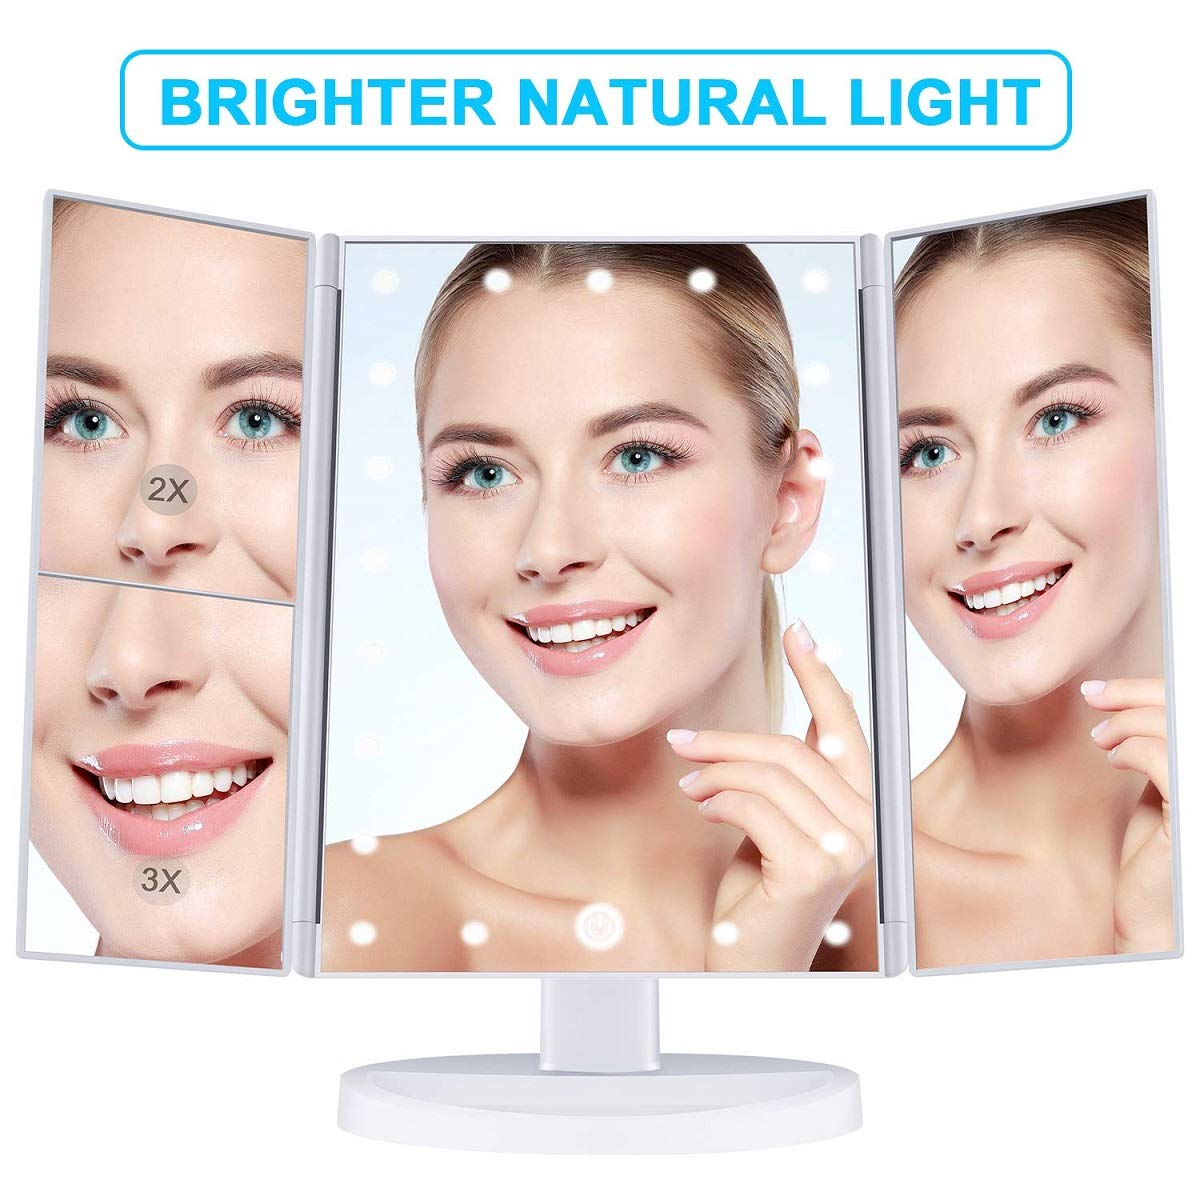 Liuy Makeup Mirror 22 Led Vanity Mirror with Lights, 1x 2x 3x Magnification, Touch Screen Switch, 180 Degree Rotation, Dual Power Supply, Portable Trifold Makeup Mirror White